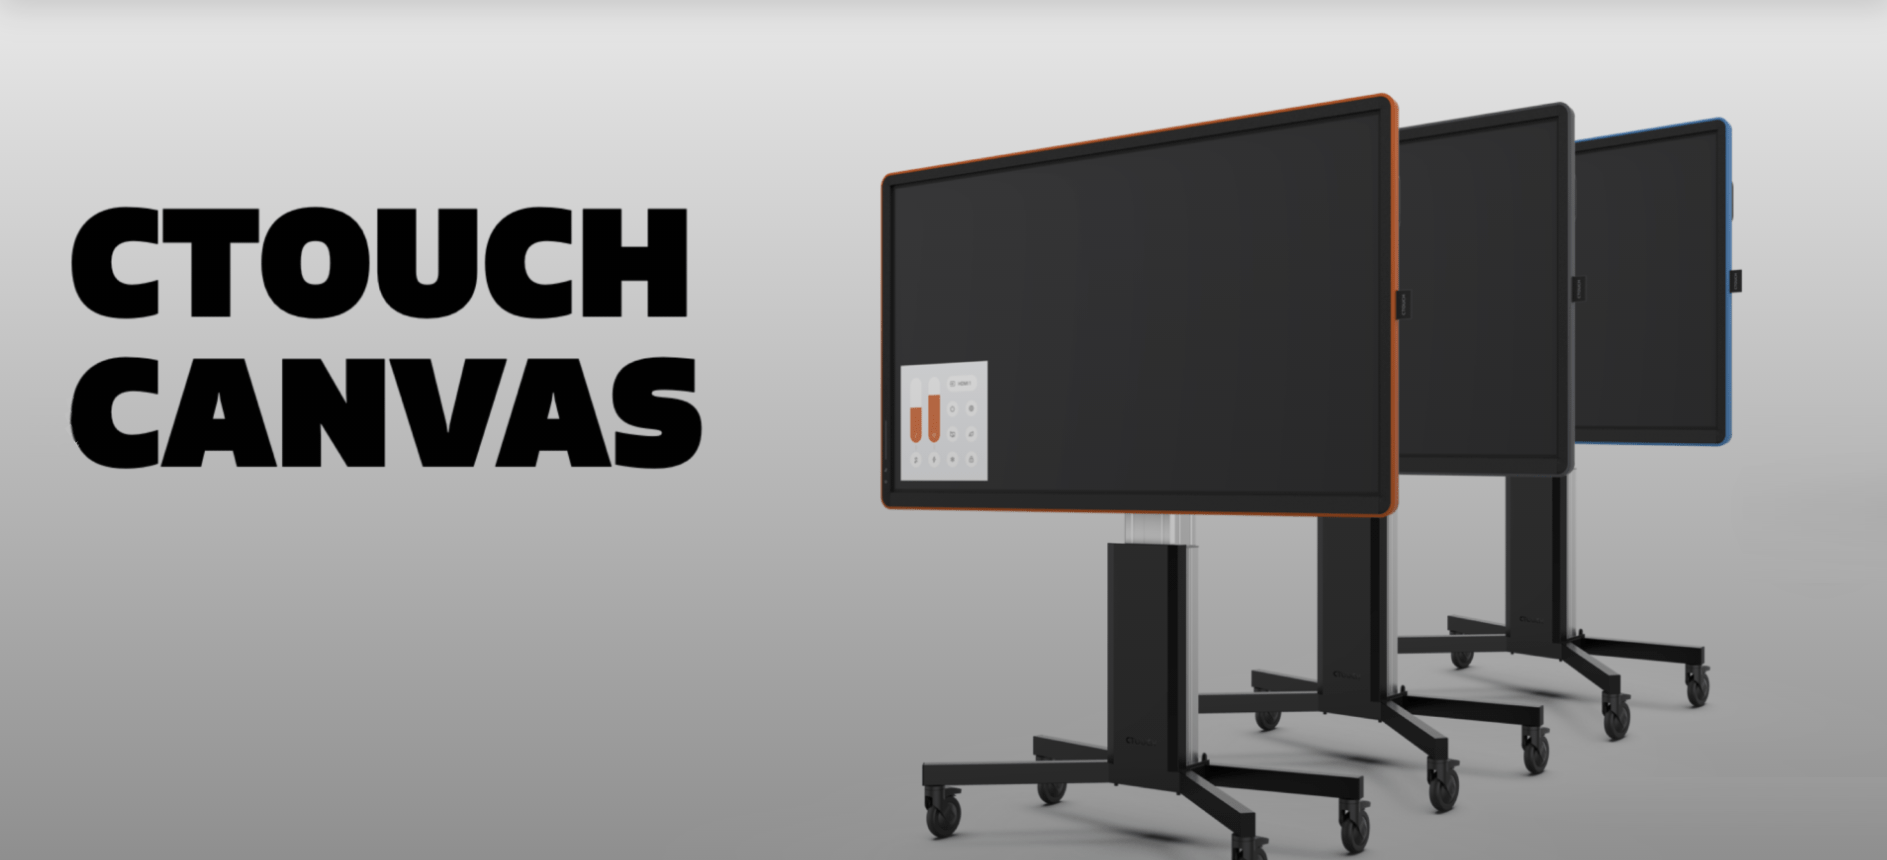 Ctouch Canvas touchscreen